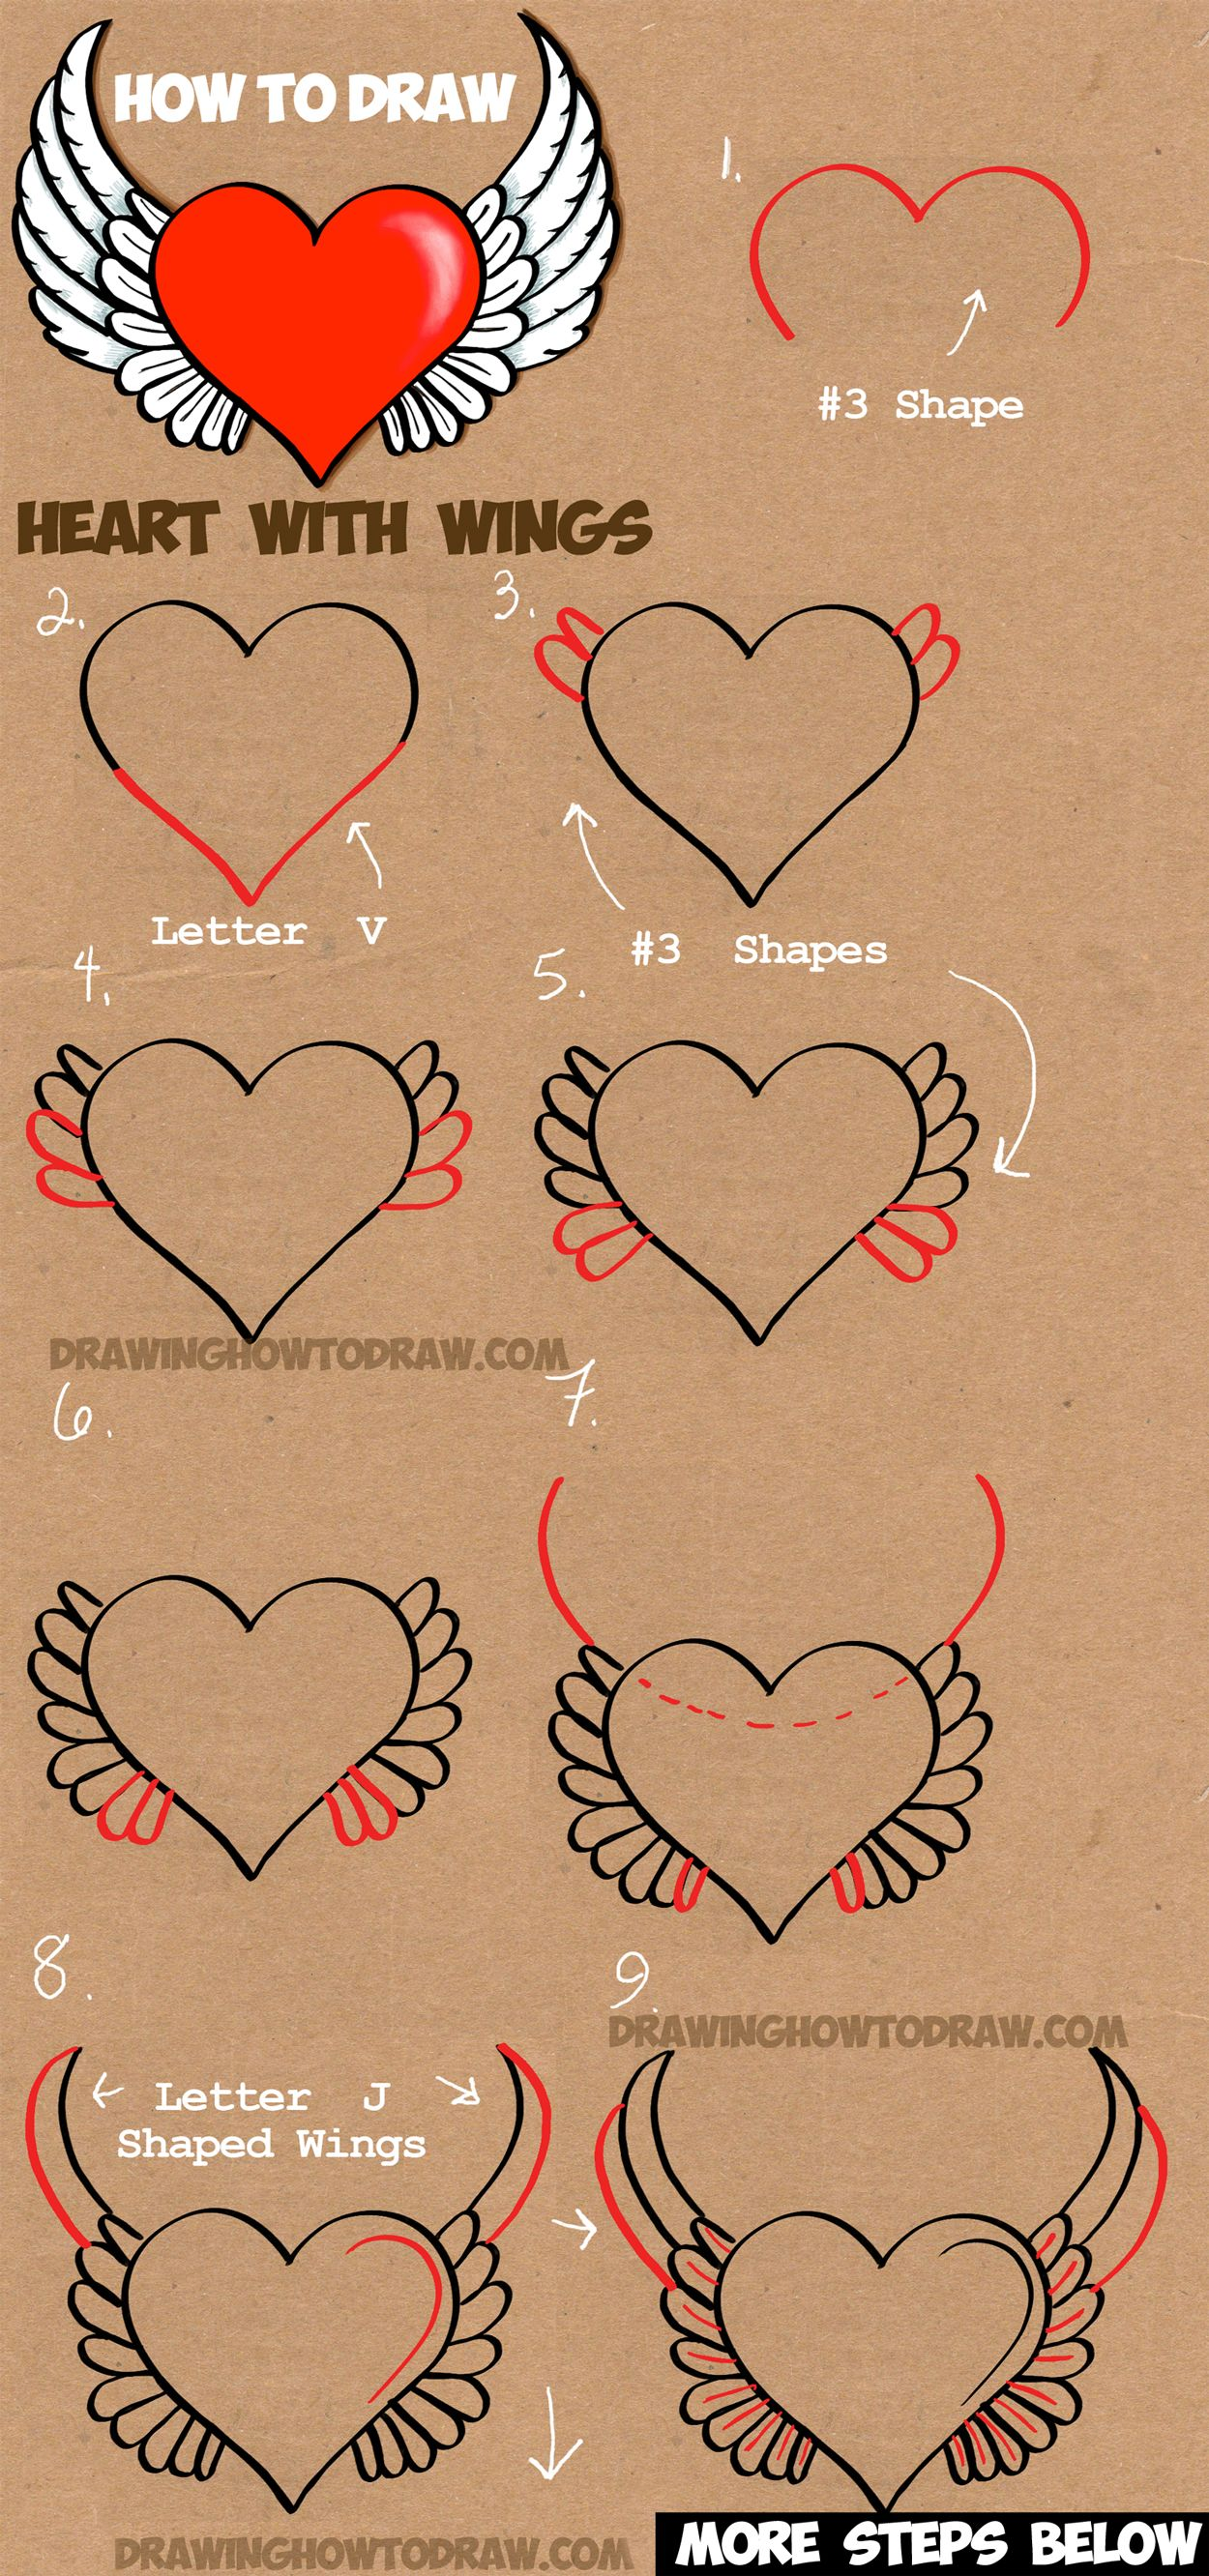 learn how to draw a heart with angel wings simple steps drawing